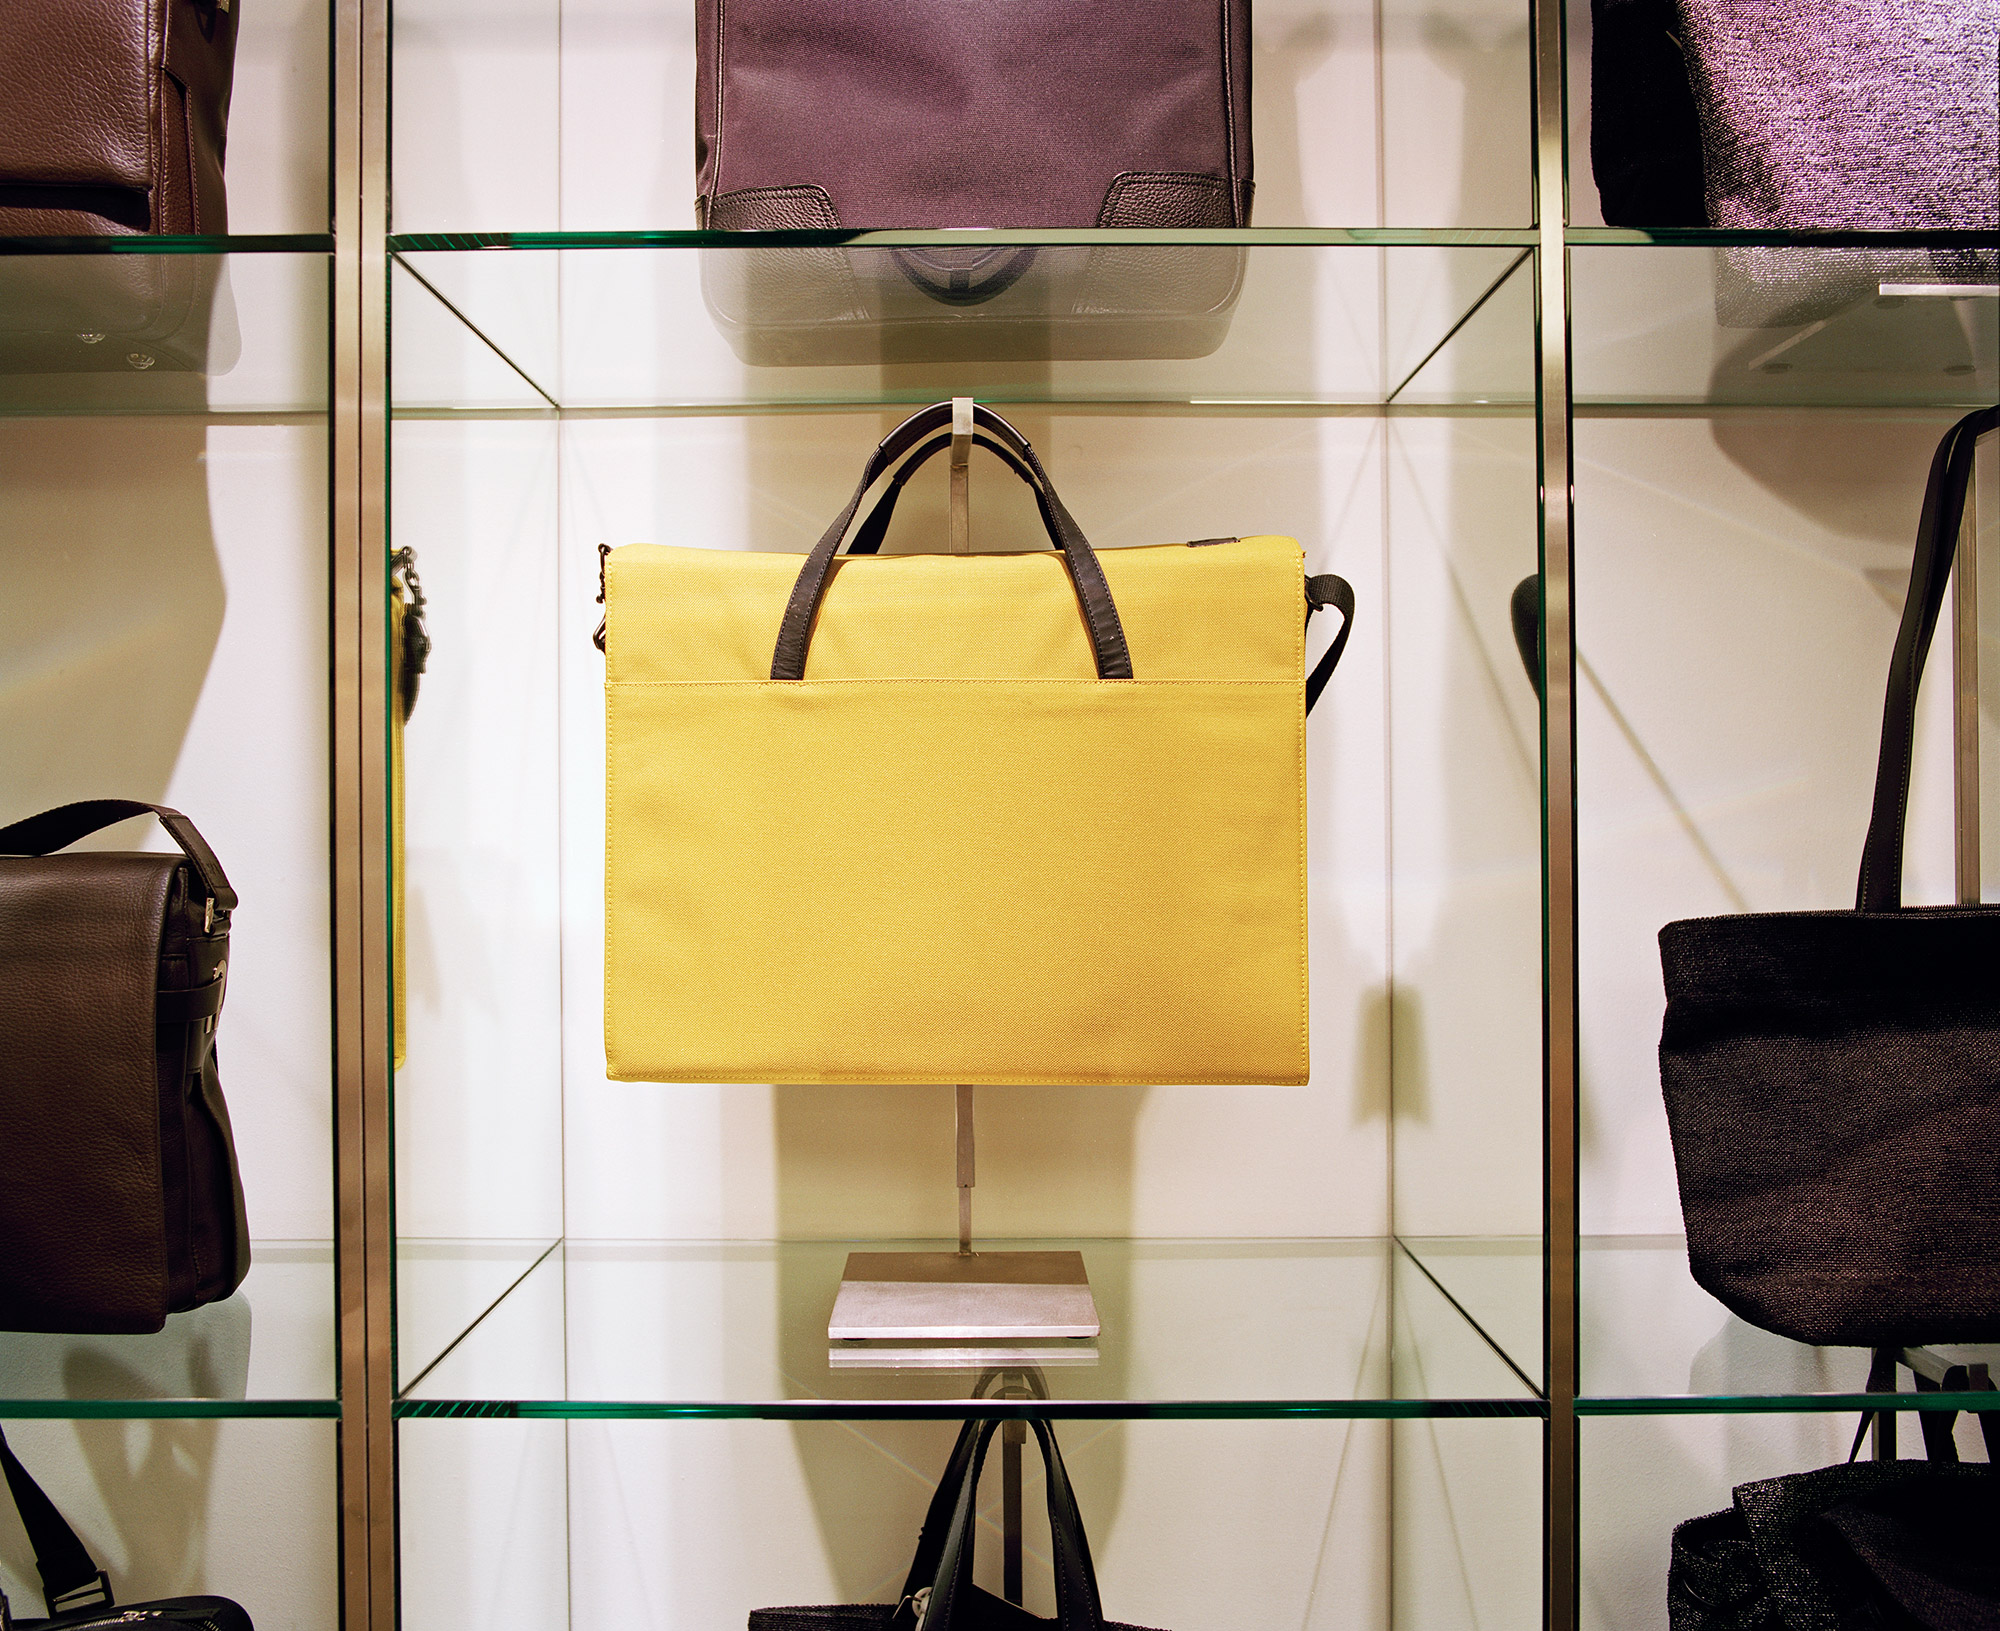 Paperchase Tottenham Court Road, square glass shelving featuring yellow bag